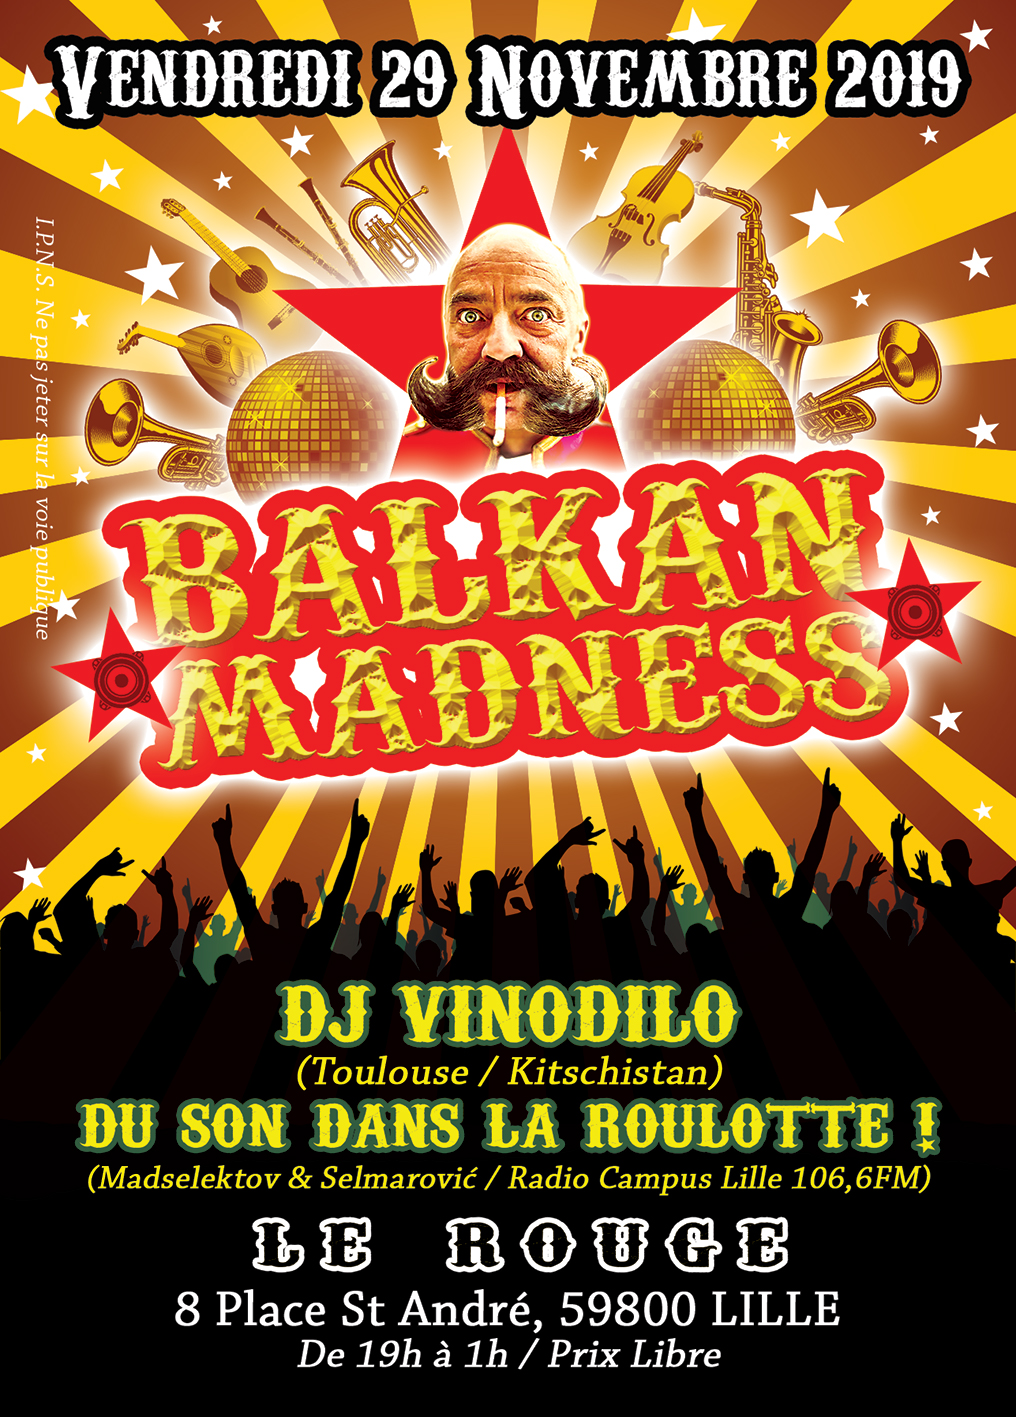 flyer-20191129-Le-Rouge-Vinodilo